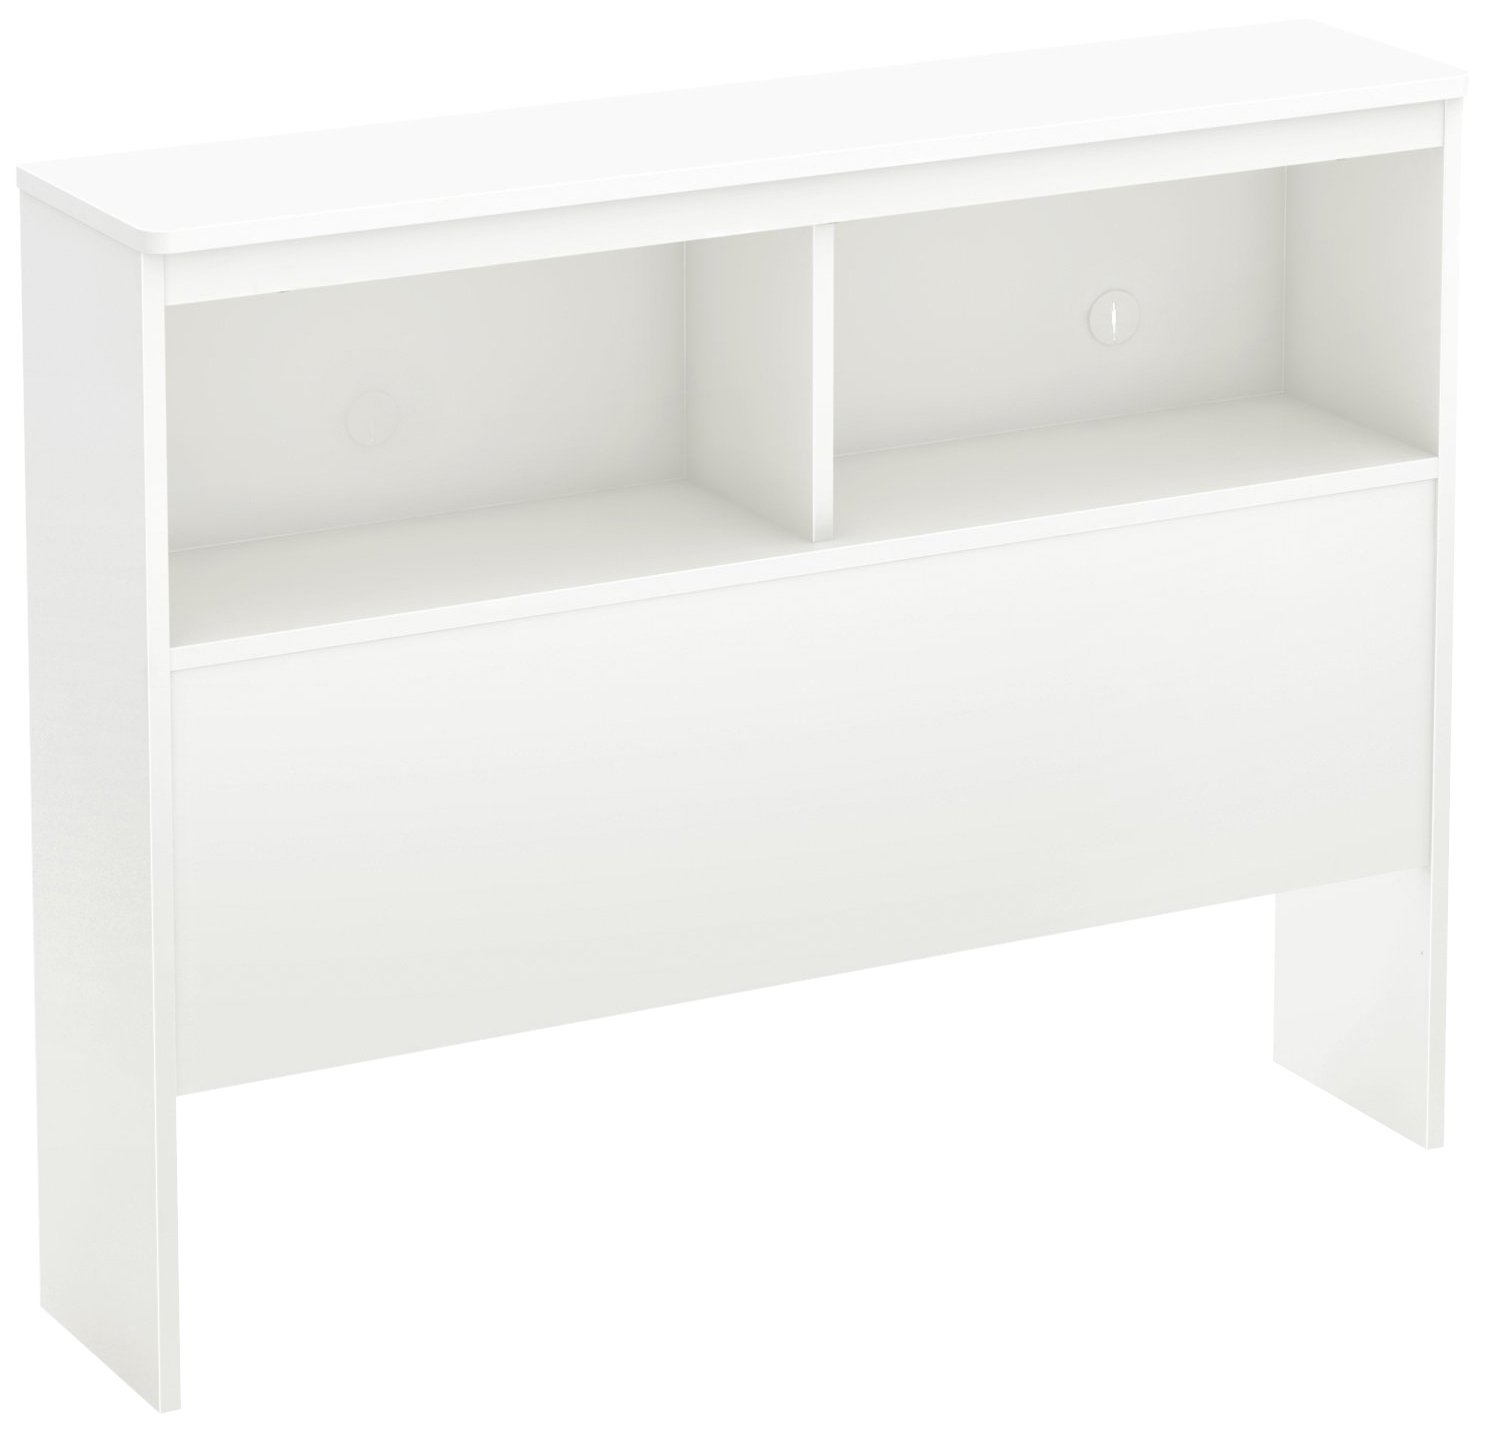 South Shore Libra Bookcase Headboard with Storage, Twin 39-inch, Pure White